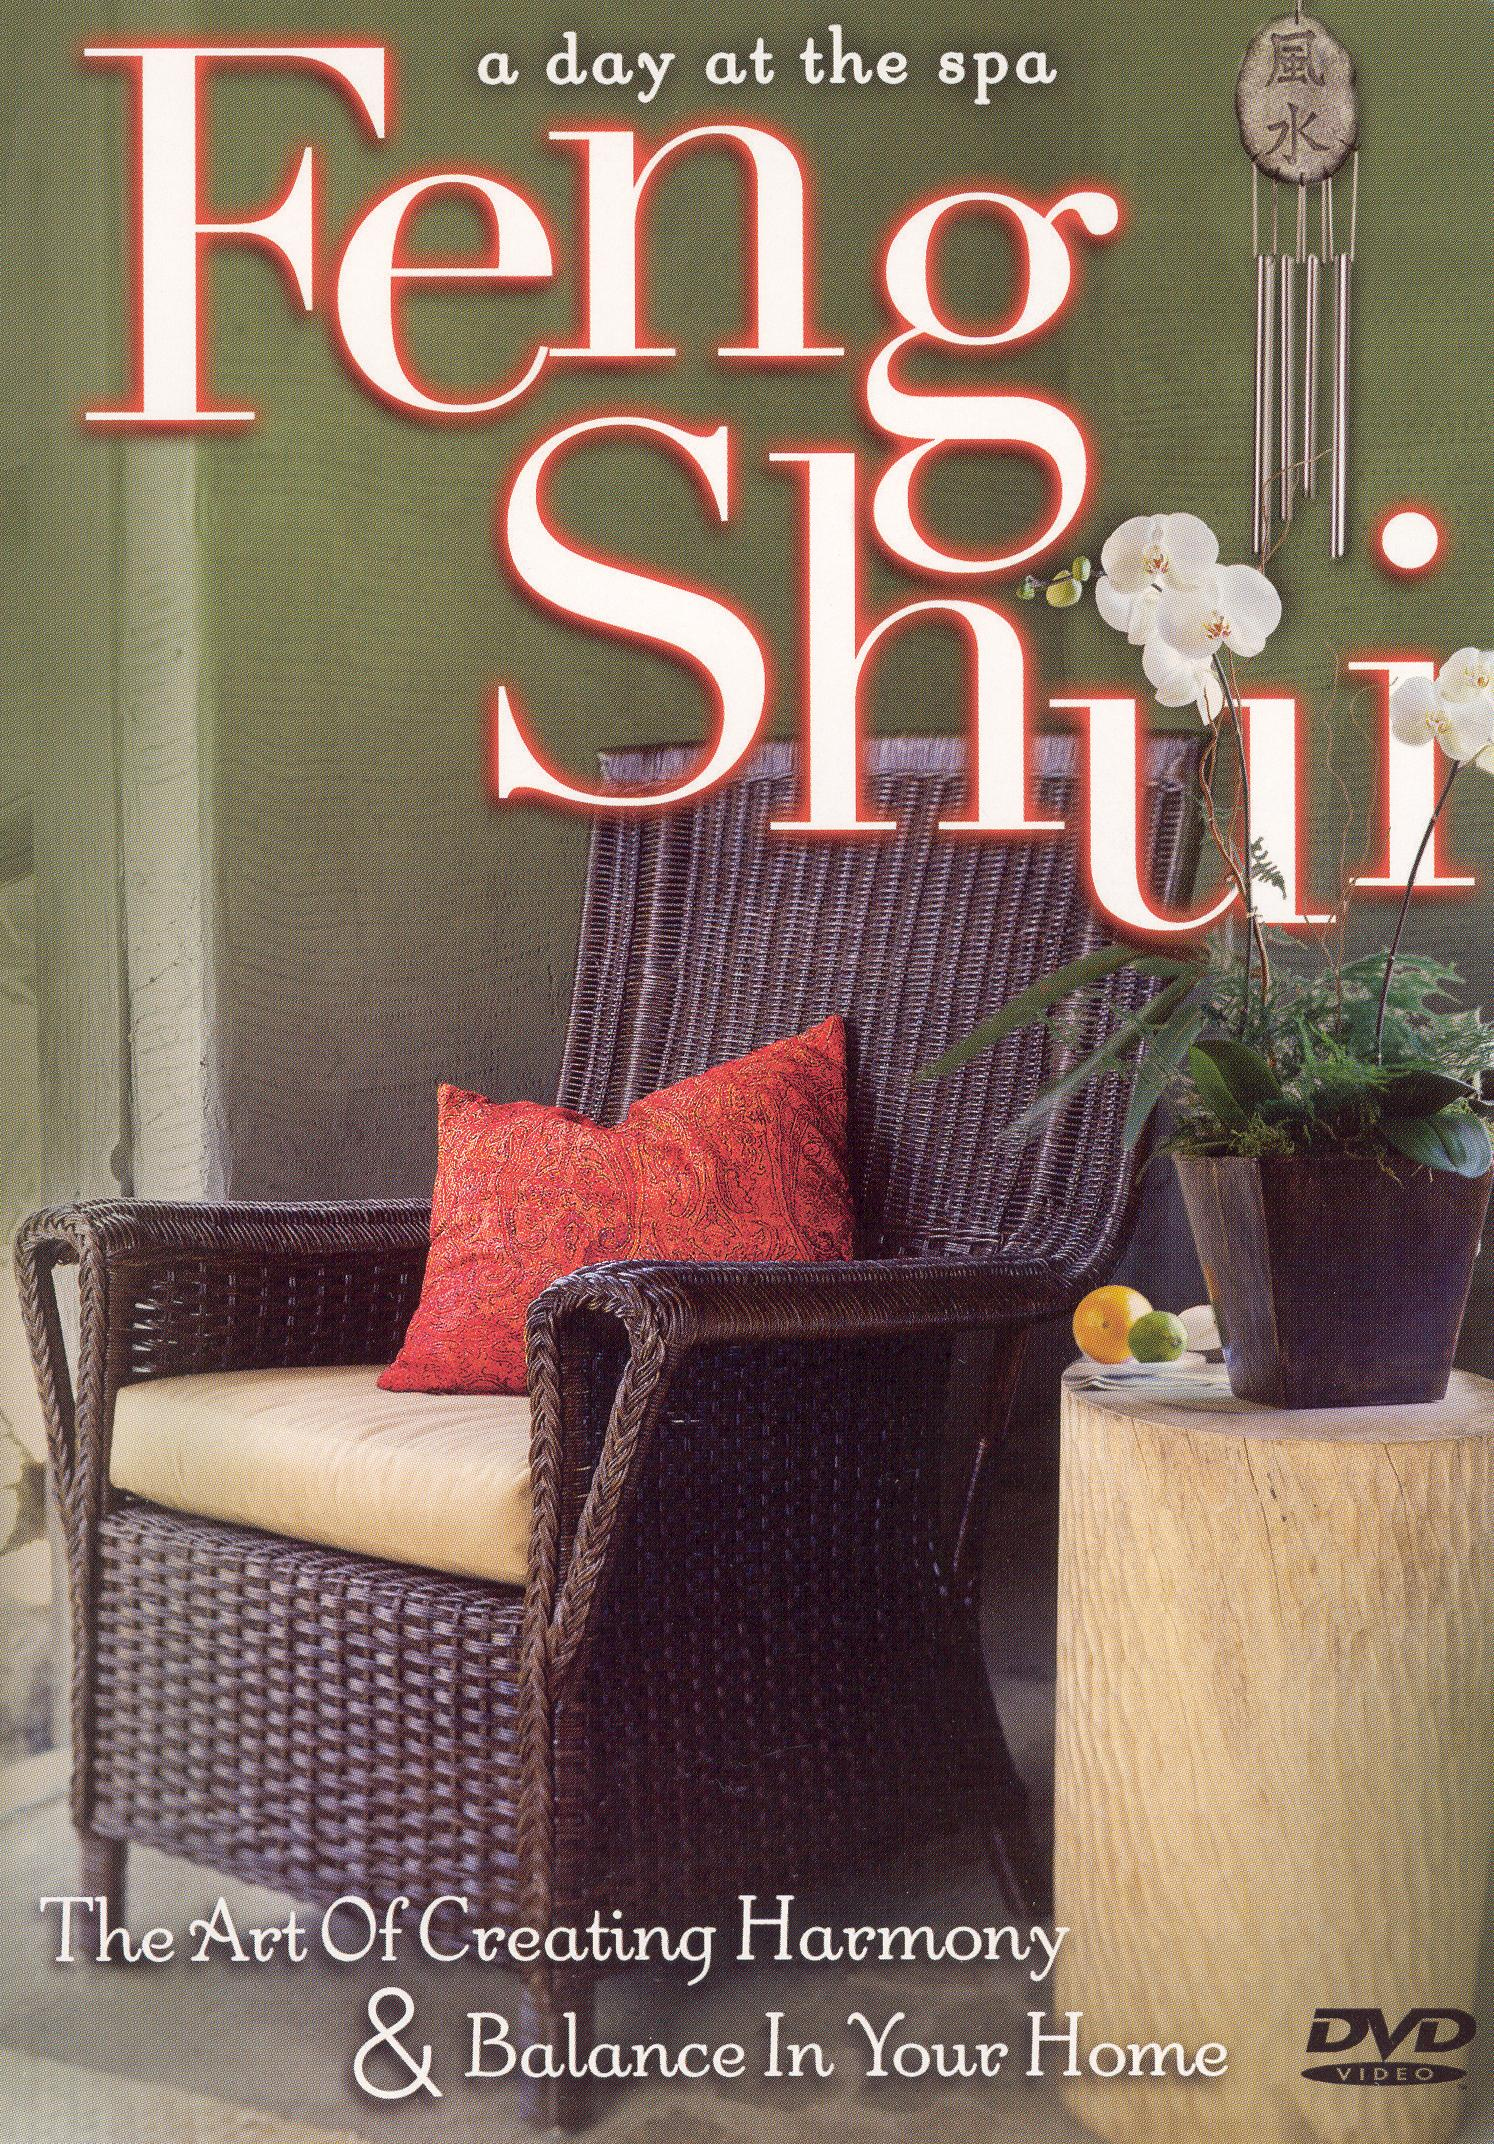 A Day at the Spa: Feng Shui